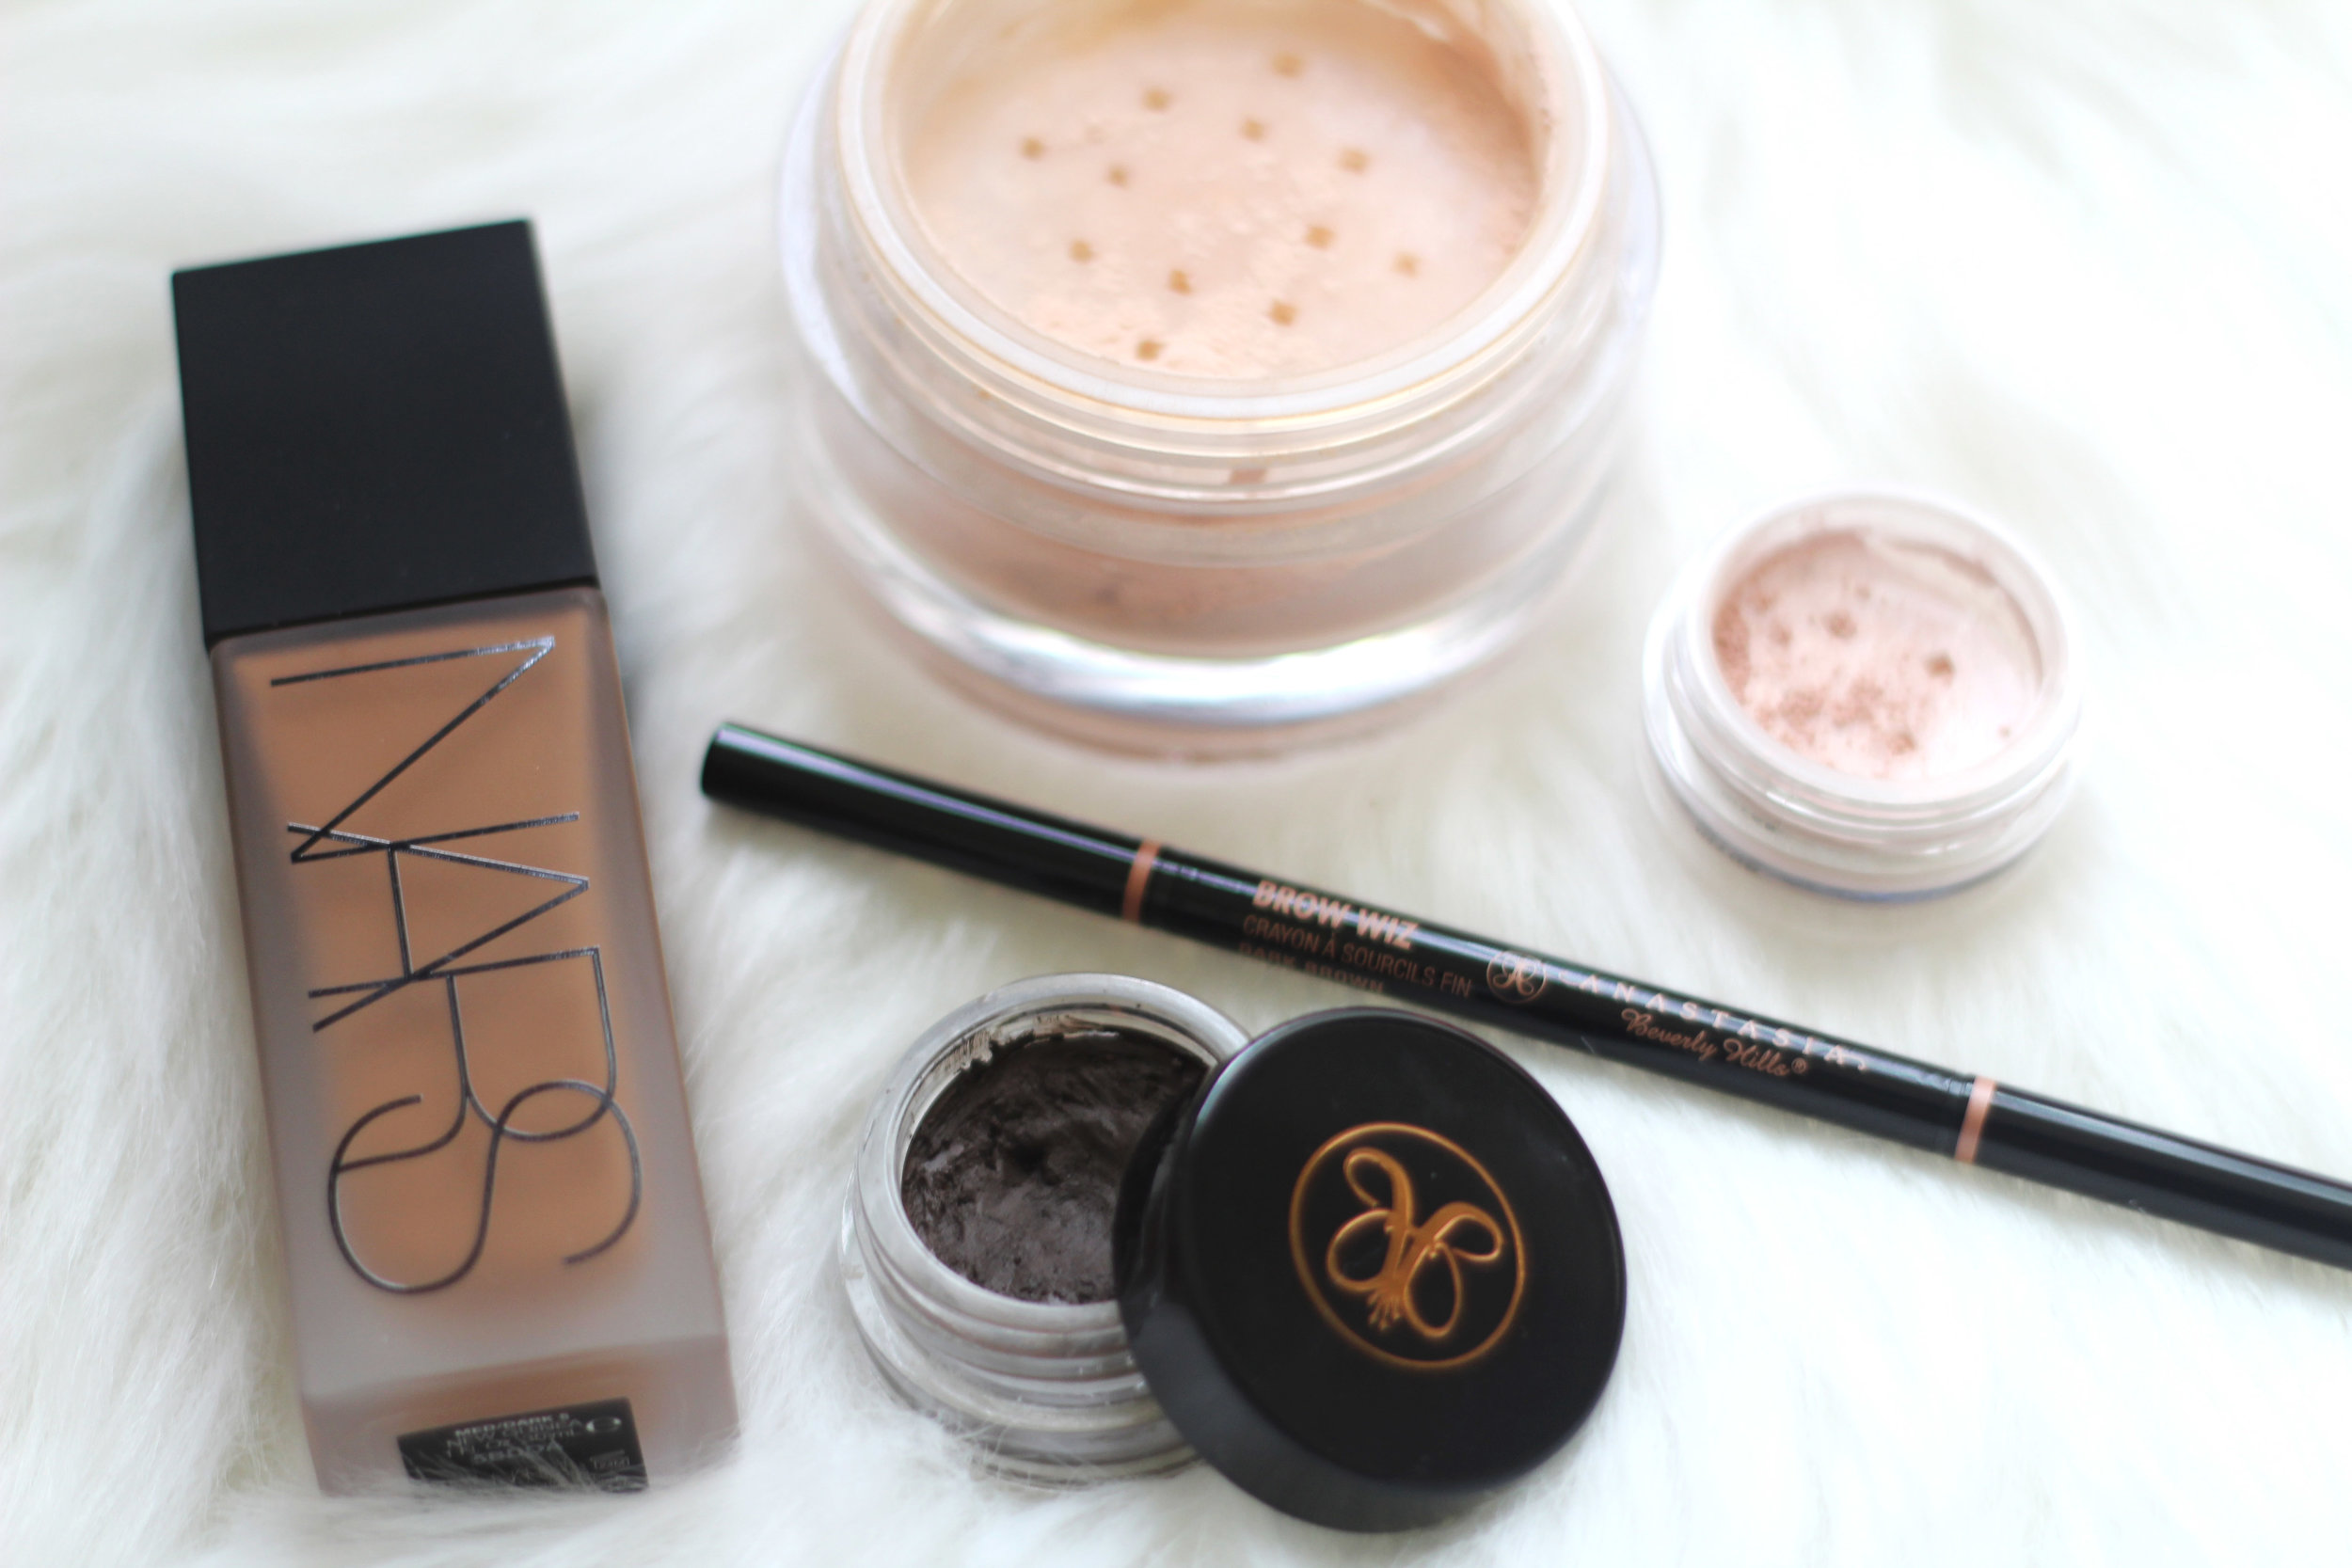 glowing complexion makeup products from Nordstrom